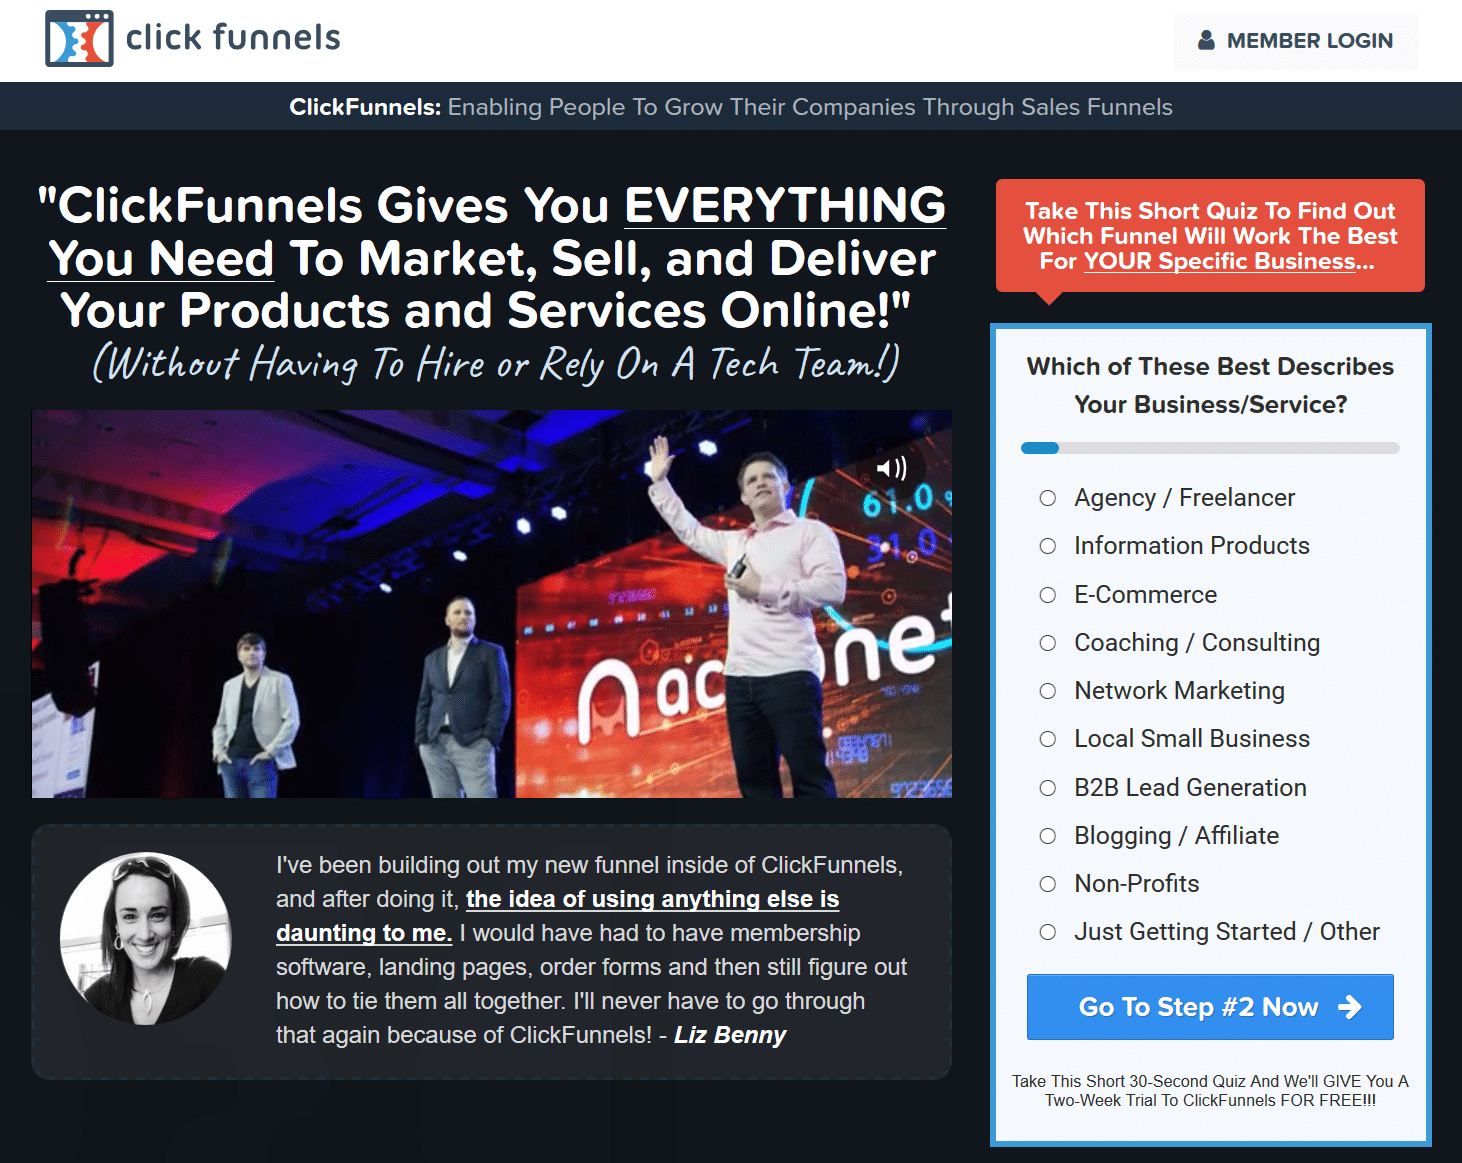 How Many Clickfunnels Can You Create?